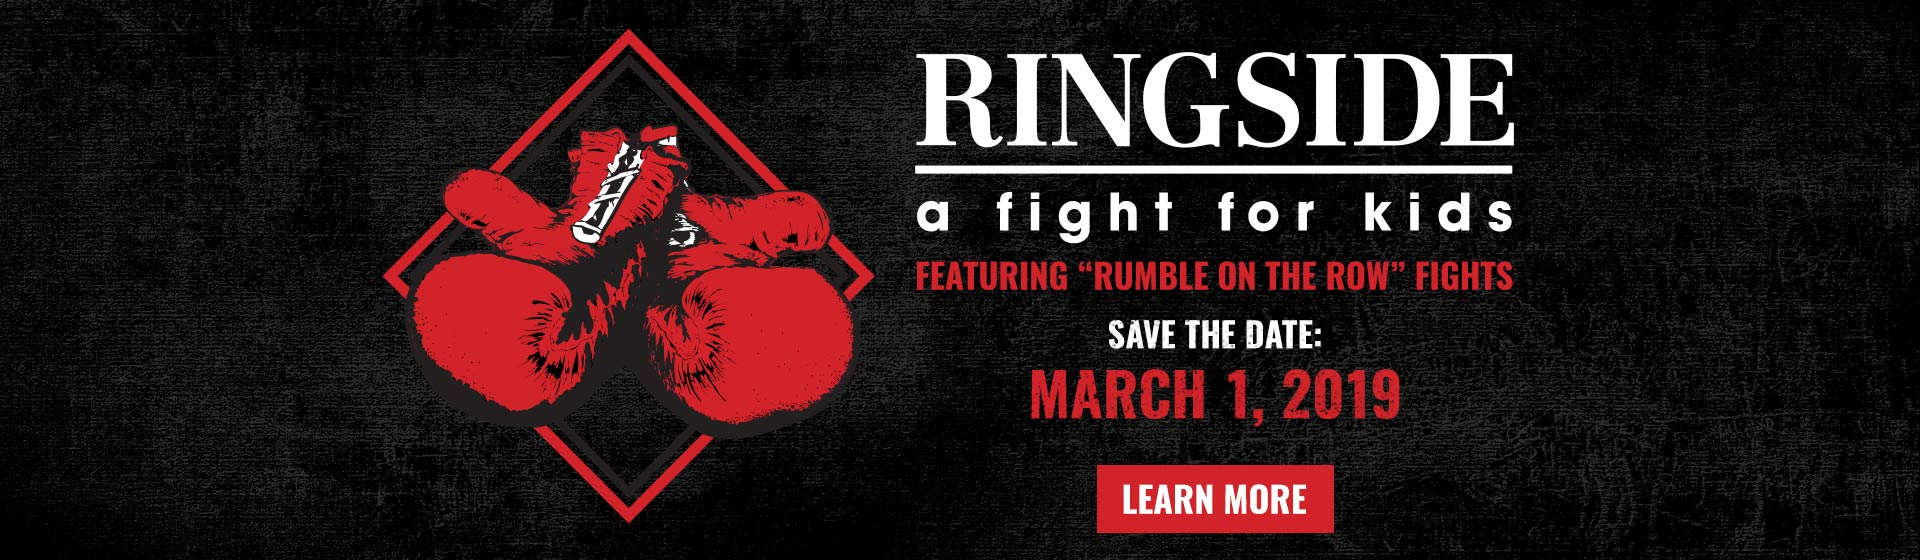 Ringside - A Fight For Kids - Save The Date - March 1, 2019 - Learn More